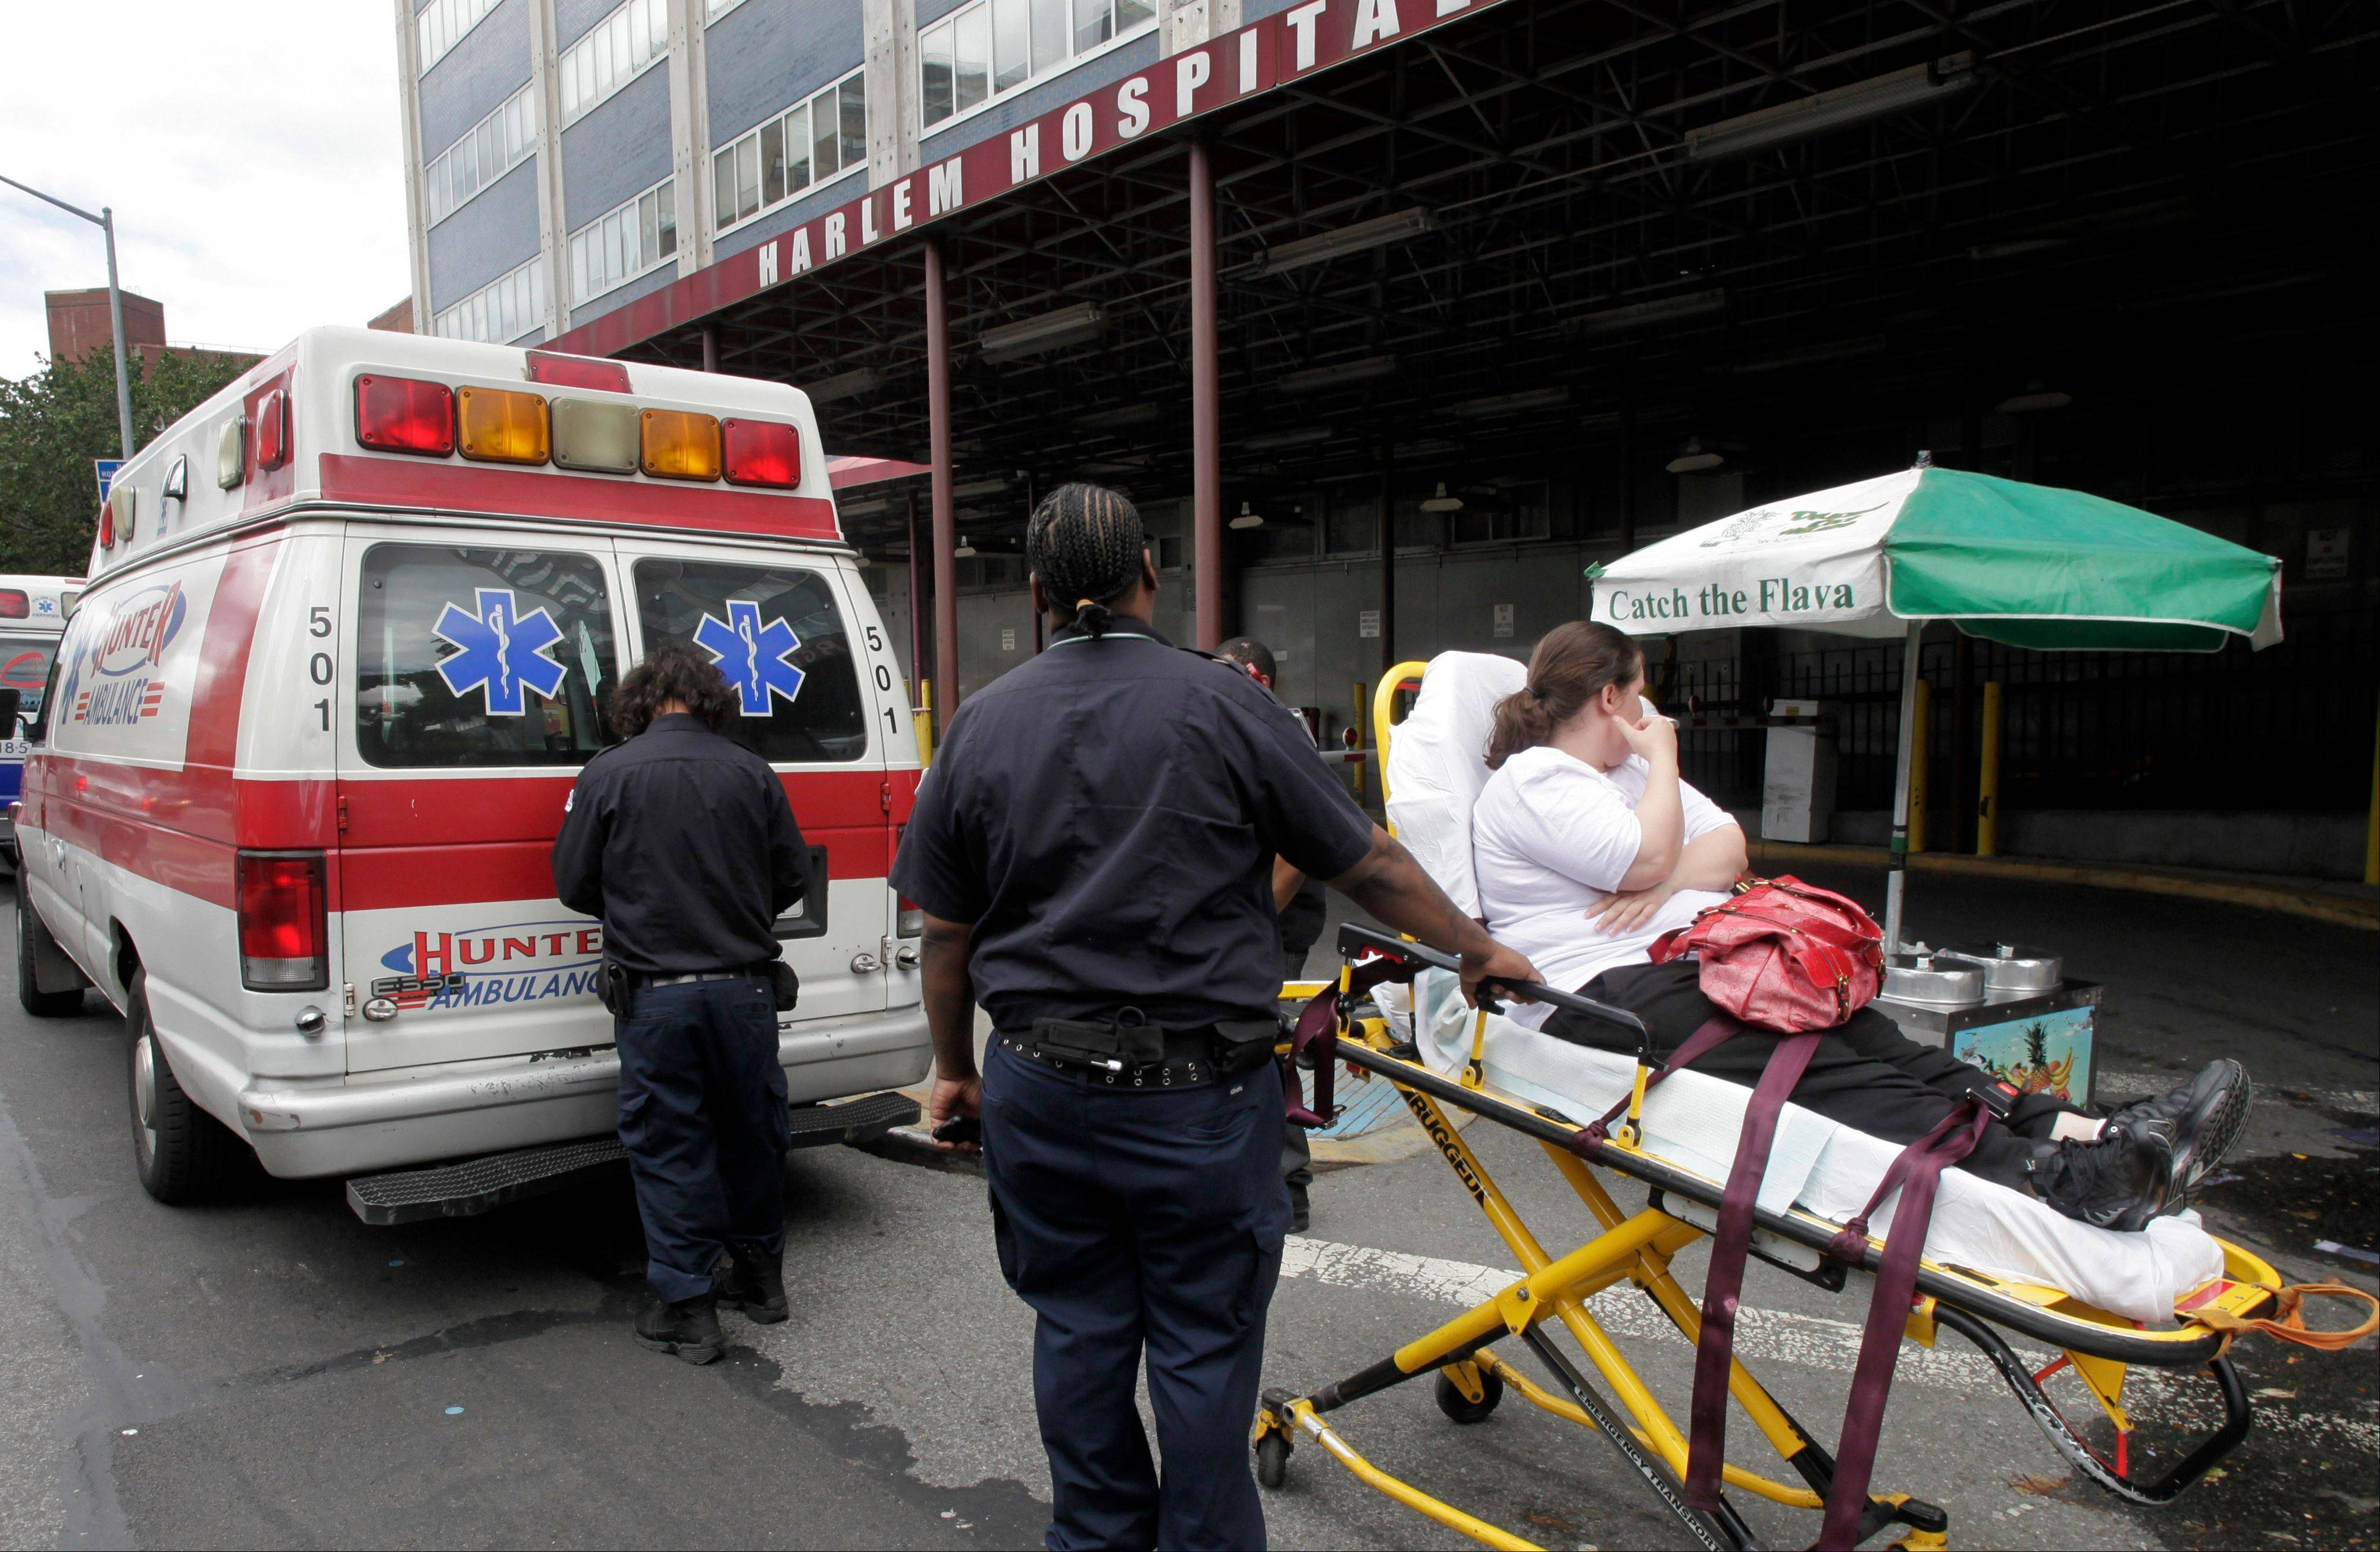 In this Tuesday, June 26, 2012 photo, a woman on a stretcher is wheeled to an ambulance as she leaves Harlem Hospital in New York. The Supreme Court is expected to rule on the constitutionality of Obama's health care overhaul Thursday, June 28.